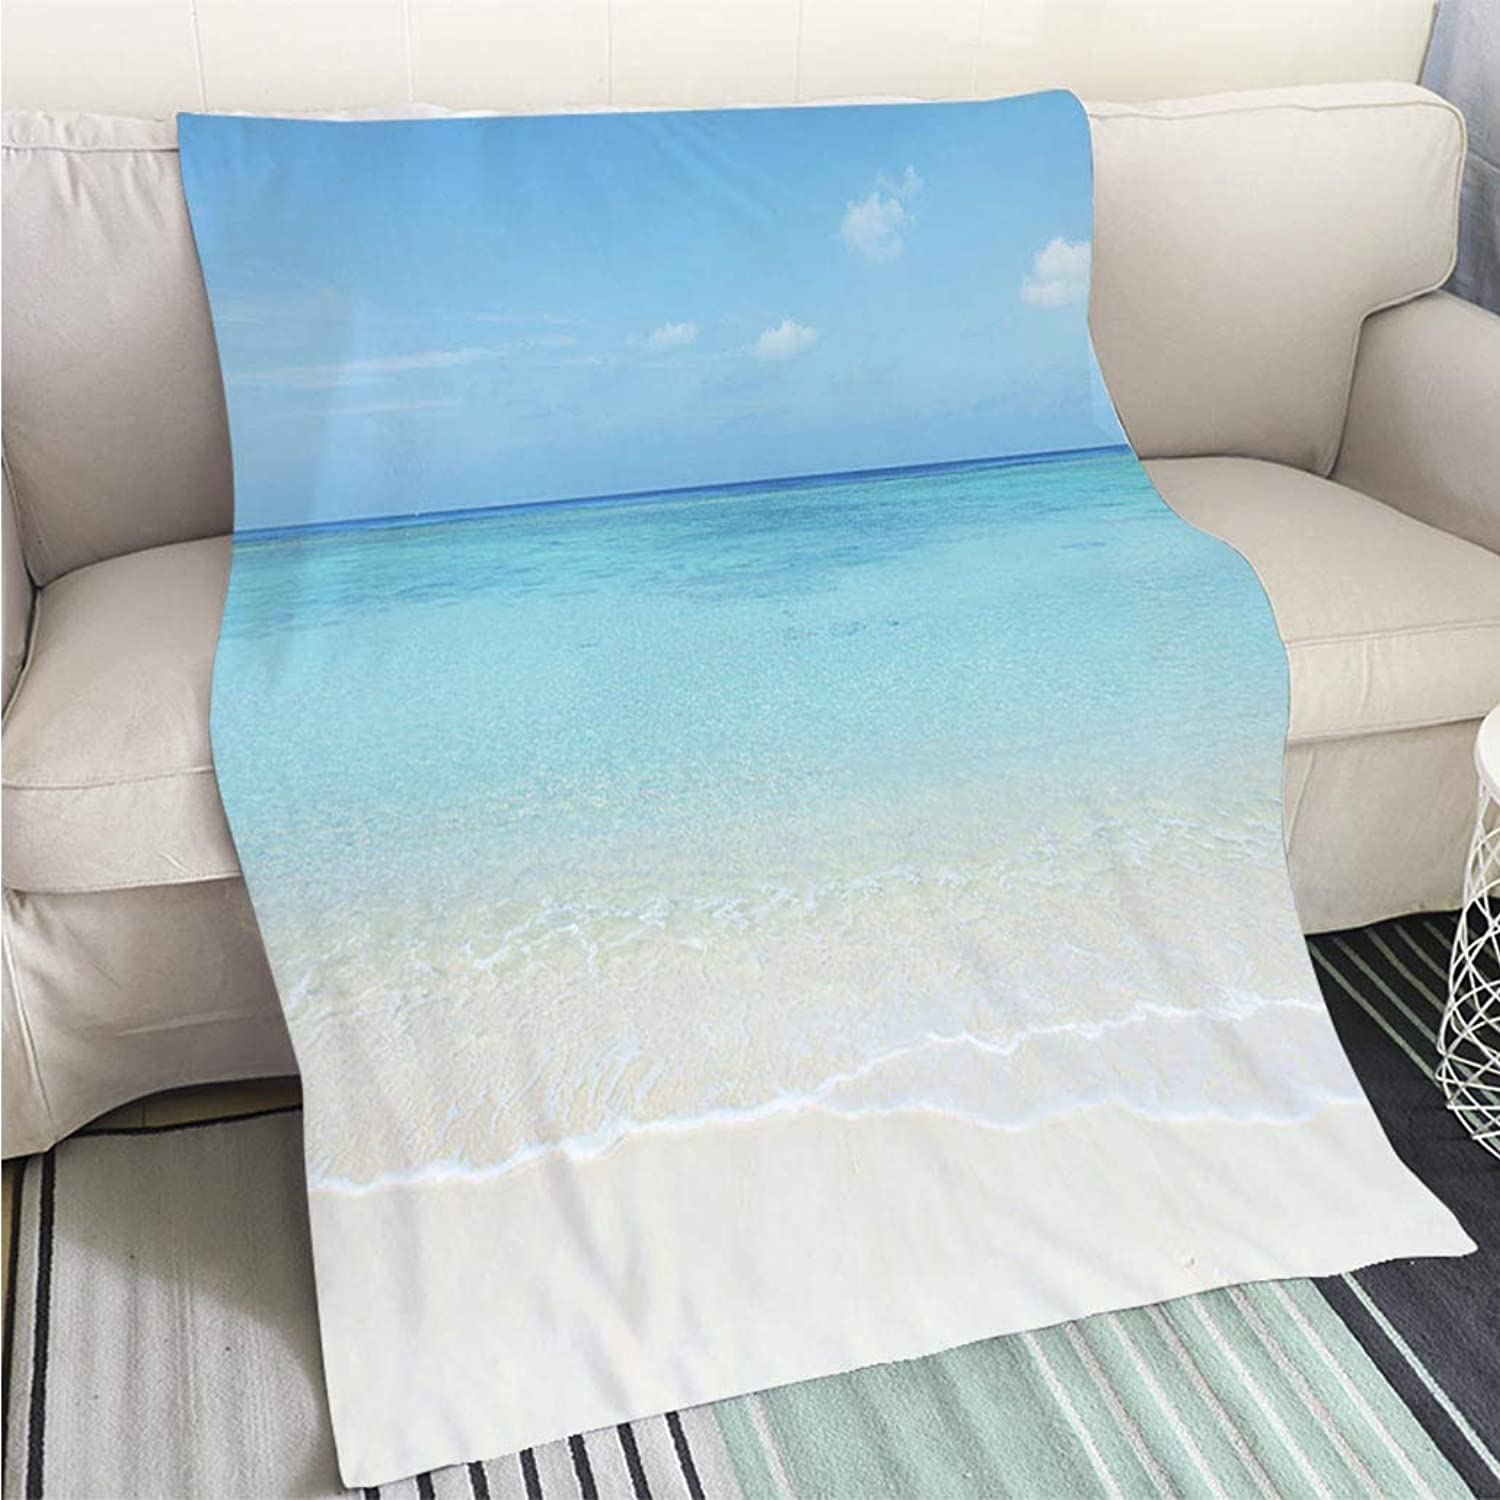 Luxury Super Soft Blanket Clean White Beach Perfect for Couch Sofa or Bed Cool Quilt